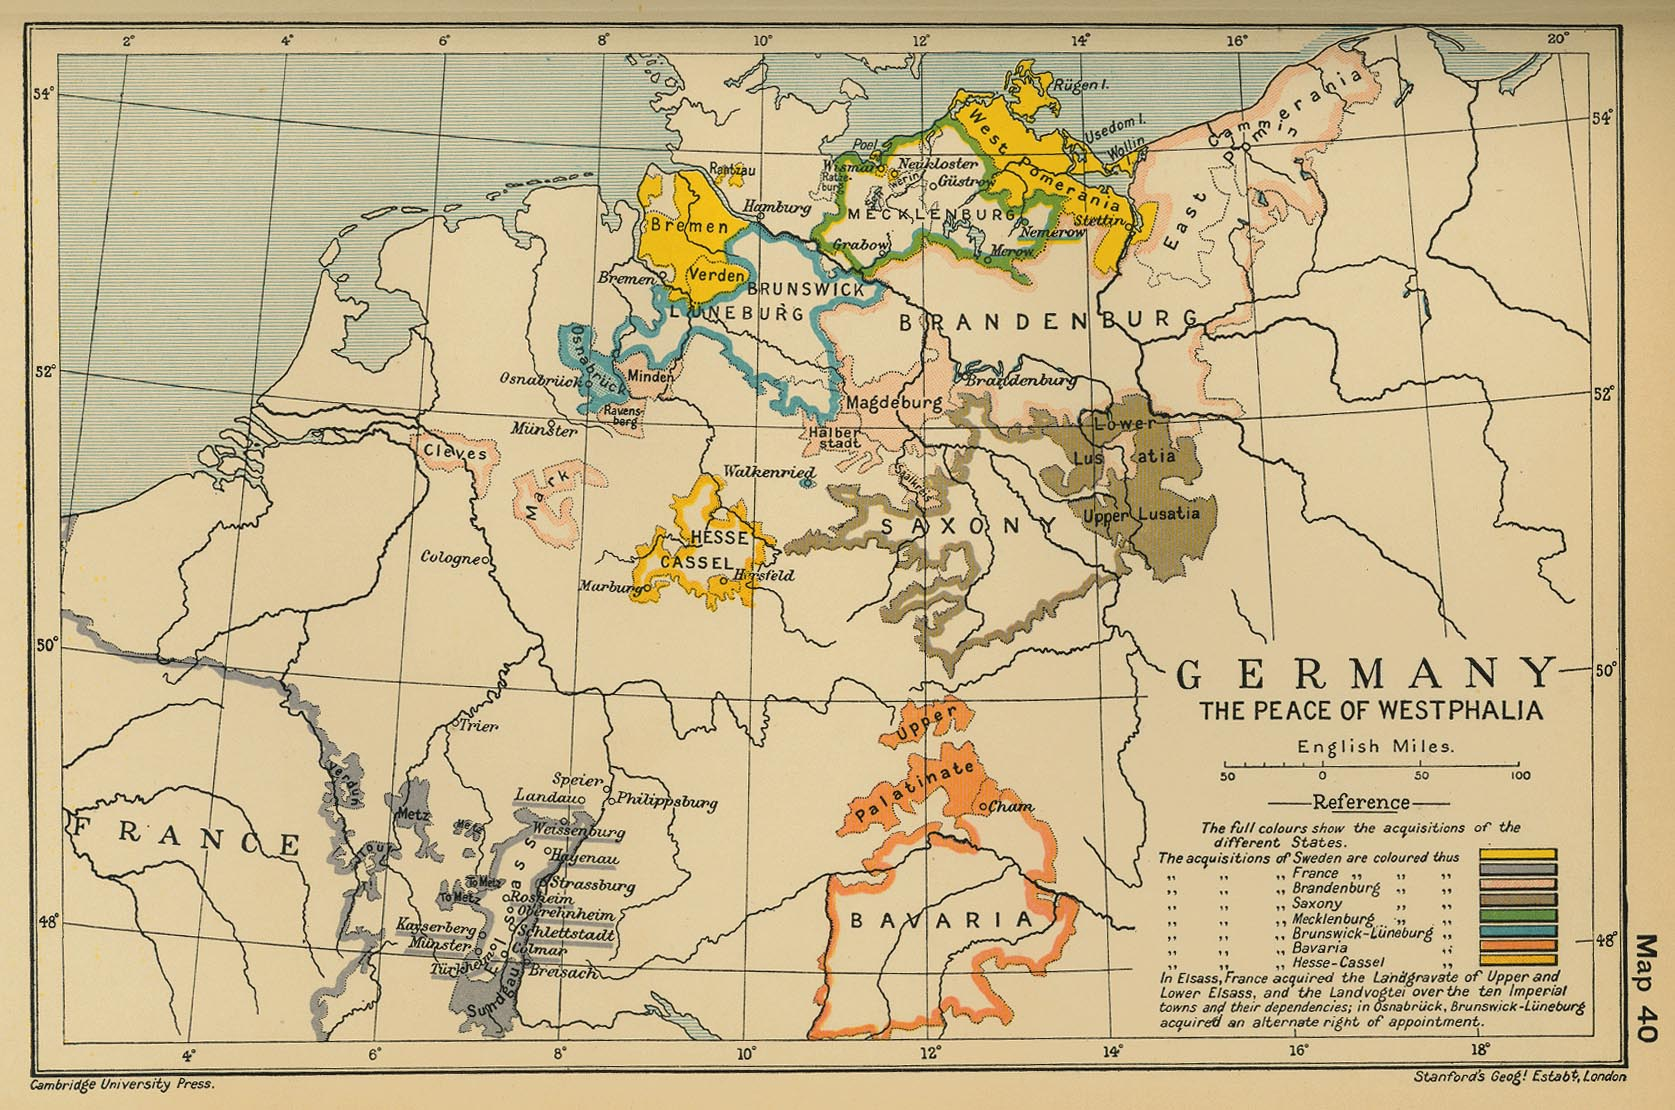 germany the peace of westphalia